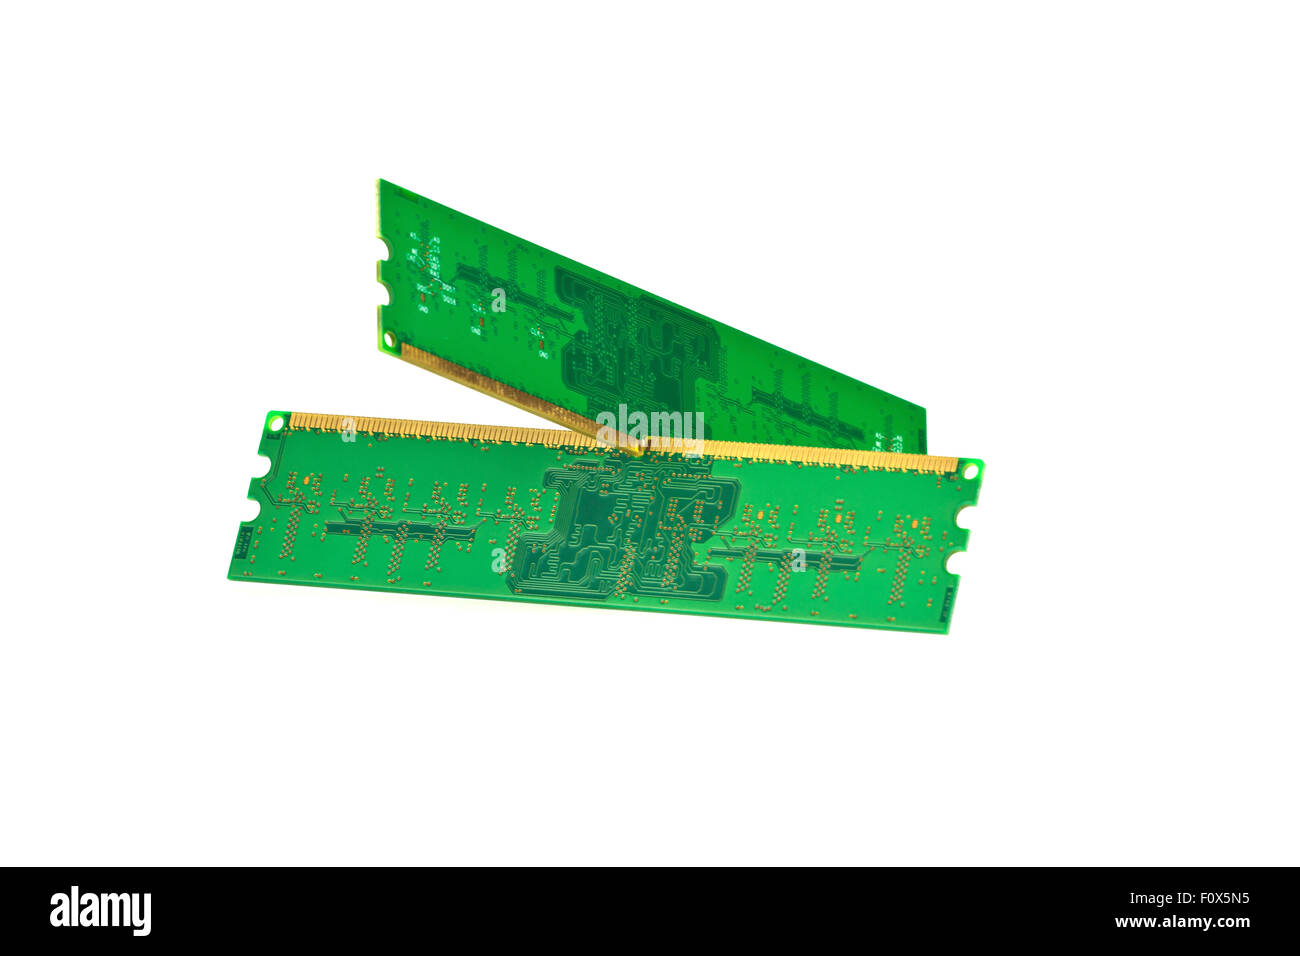 RAM, a tile desktop - Stock Image